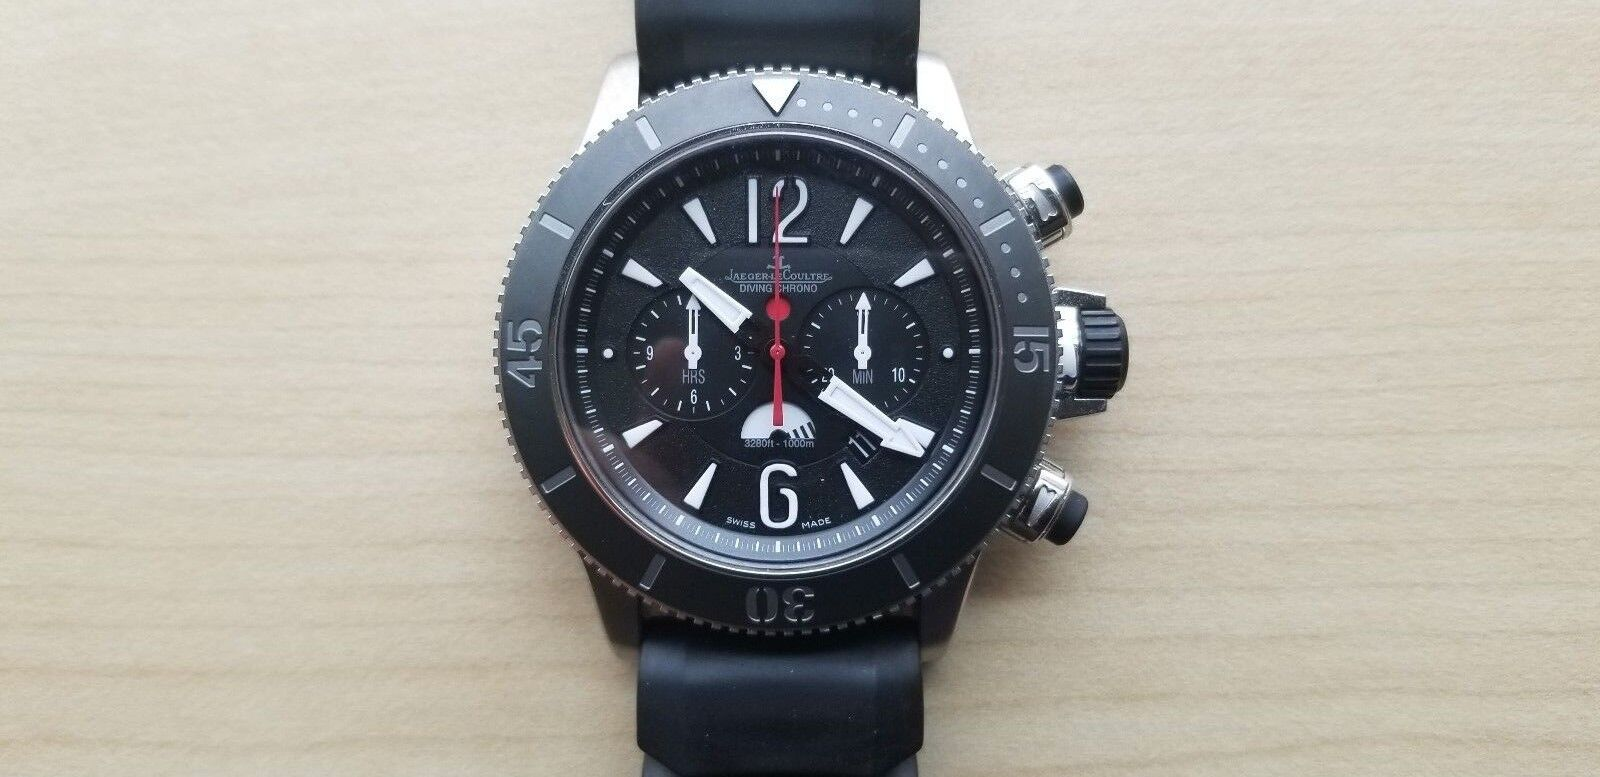 Jaeger LeCoultre Master Compressor Diving Chronograph GMT Navy Seals - watch picture 1